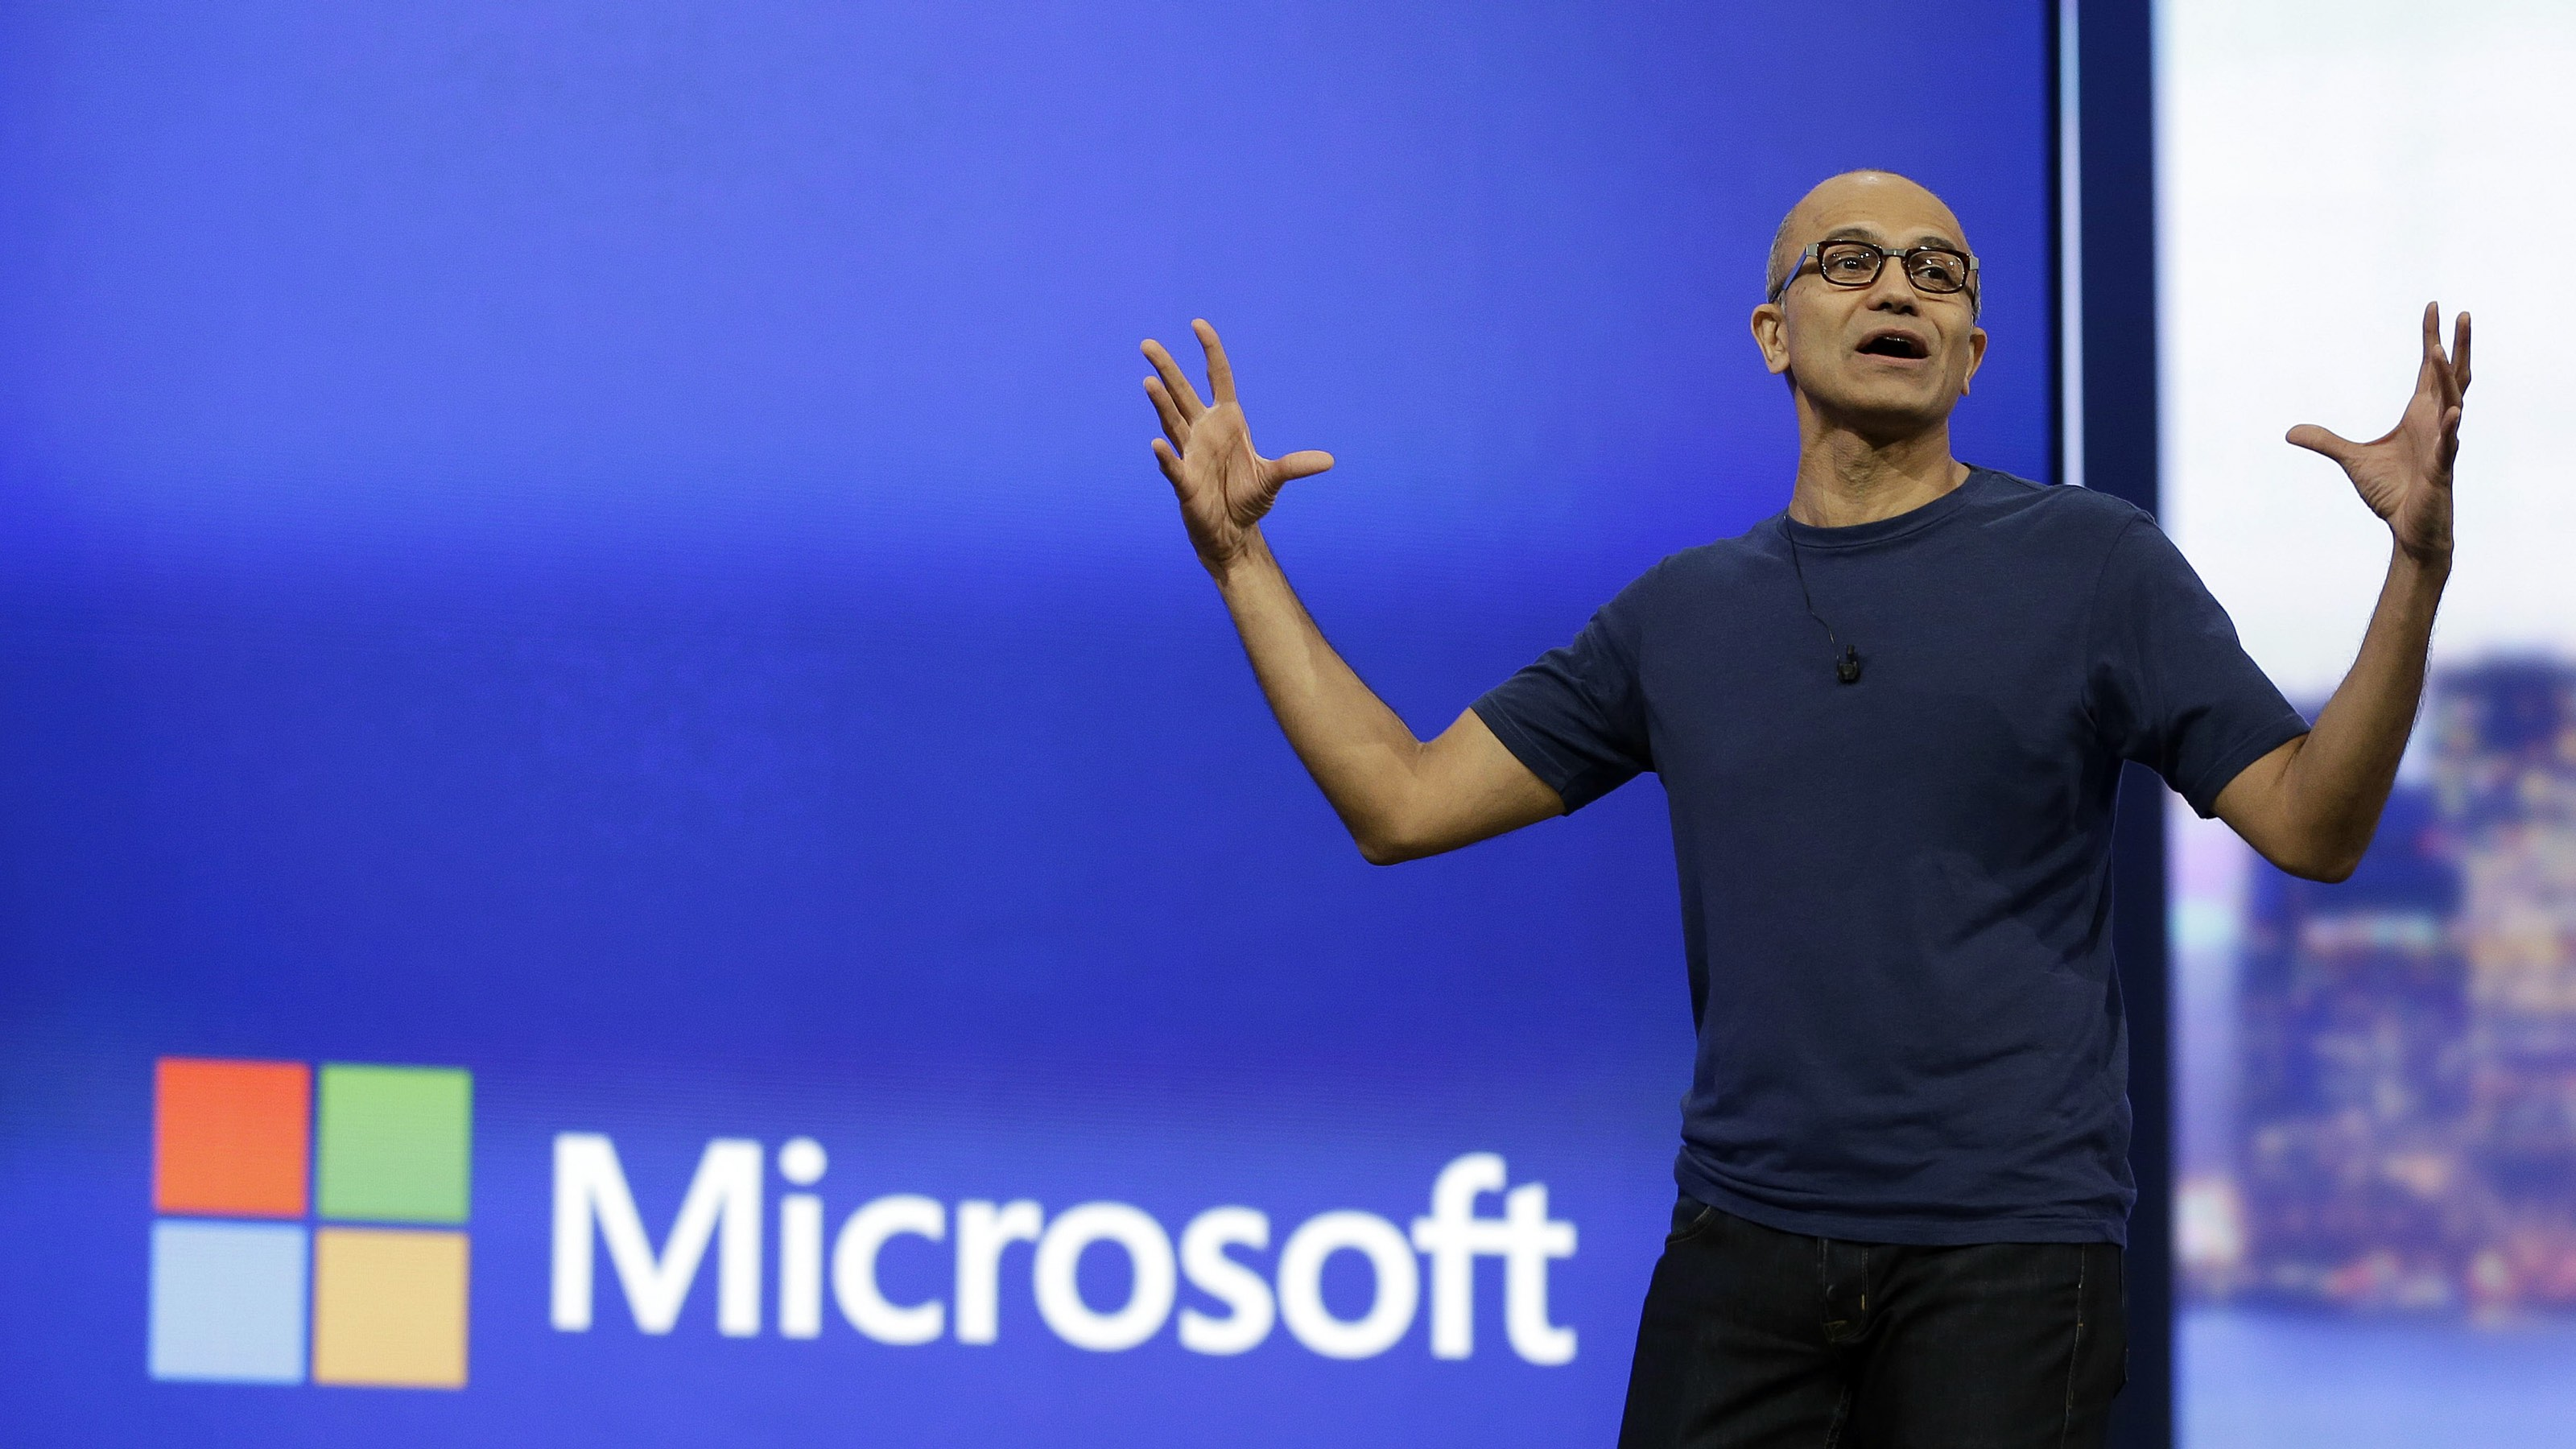 In this April 2, 2014 file photo, Microsoft CEO Satya Nadella gestures during the keynote address of the Build Conference in San Francisco. Microsoft plans to offer a glimpse of its vision for Windows on Tuesday, Sept. 30, 2014, as Nadella seeks to redefine the company and recover from missteps with its flagship operating system. (AP Photo/Eric Risberg, File)